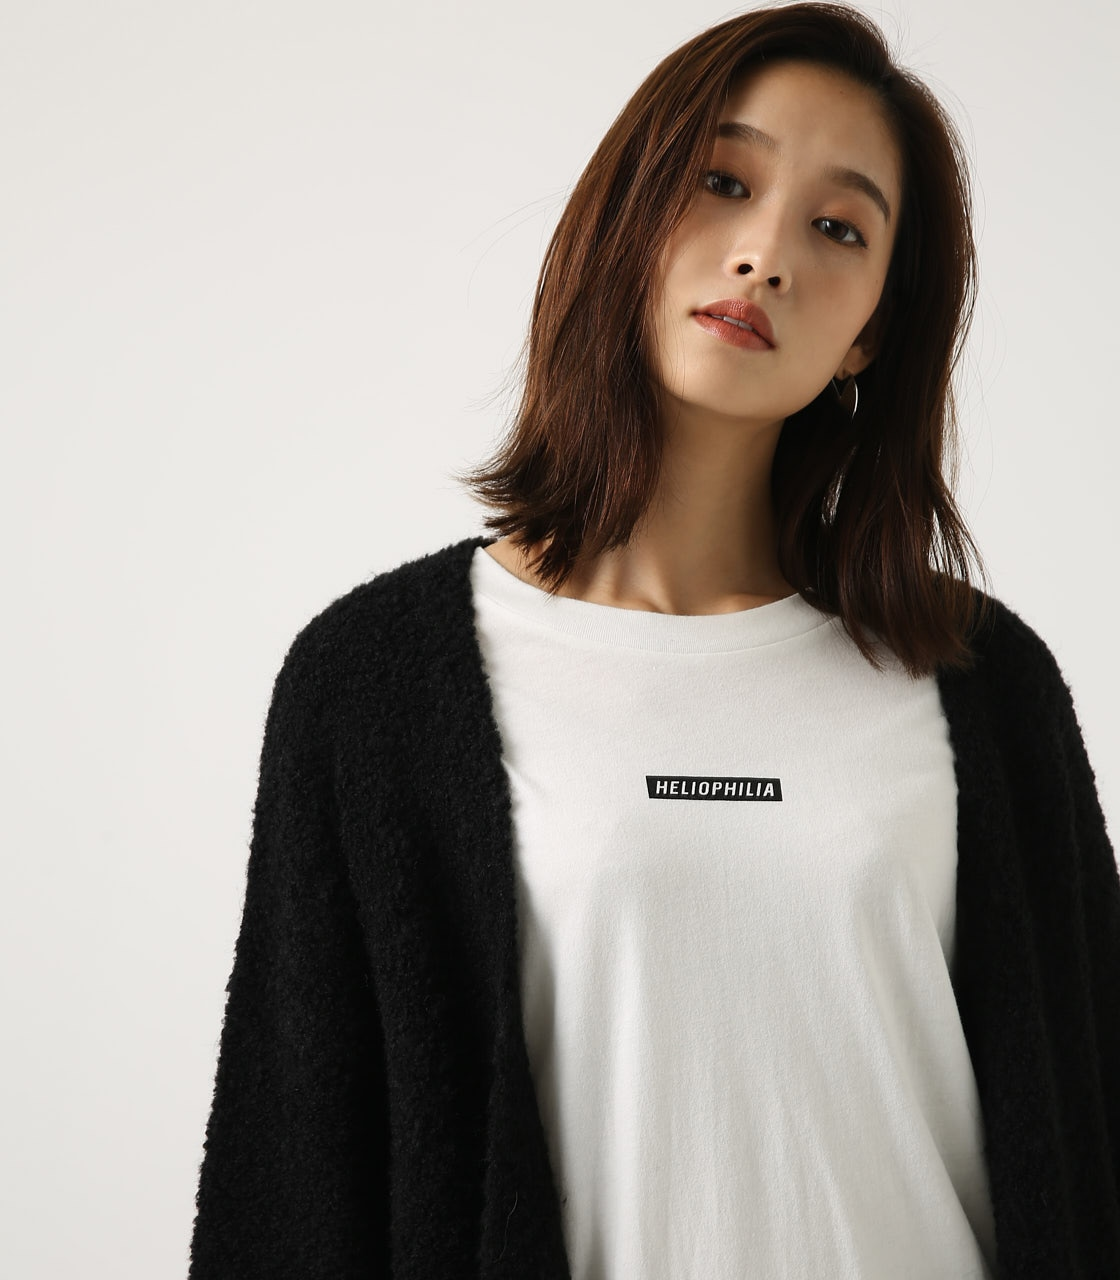 【AZUL BY MOUSSY】ブークレロングカーデ 詳細画像 BLK 3